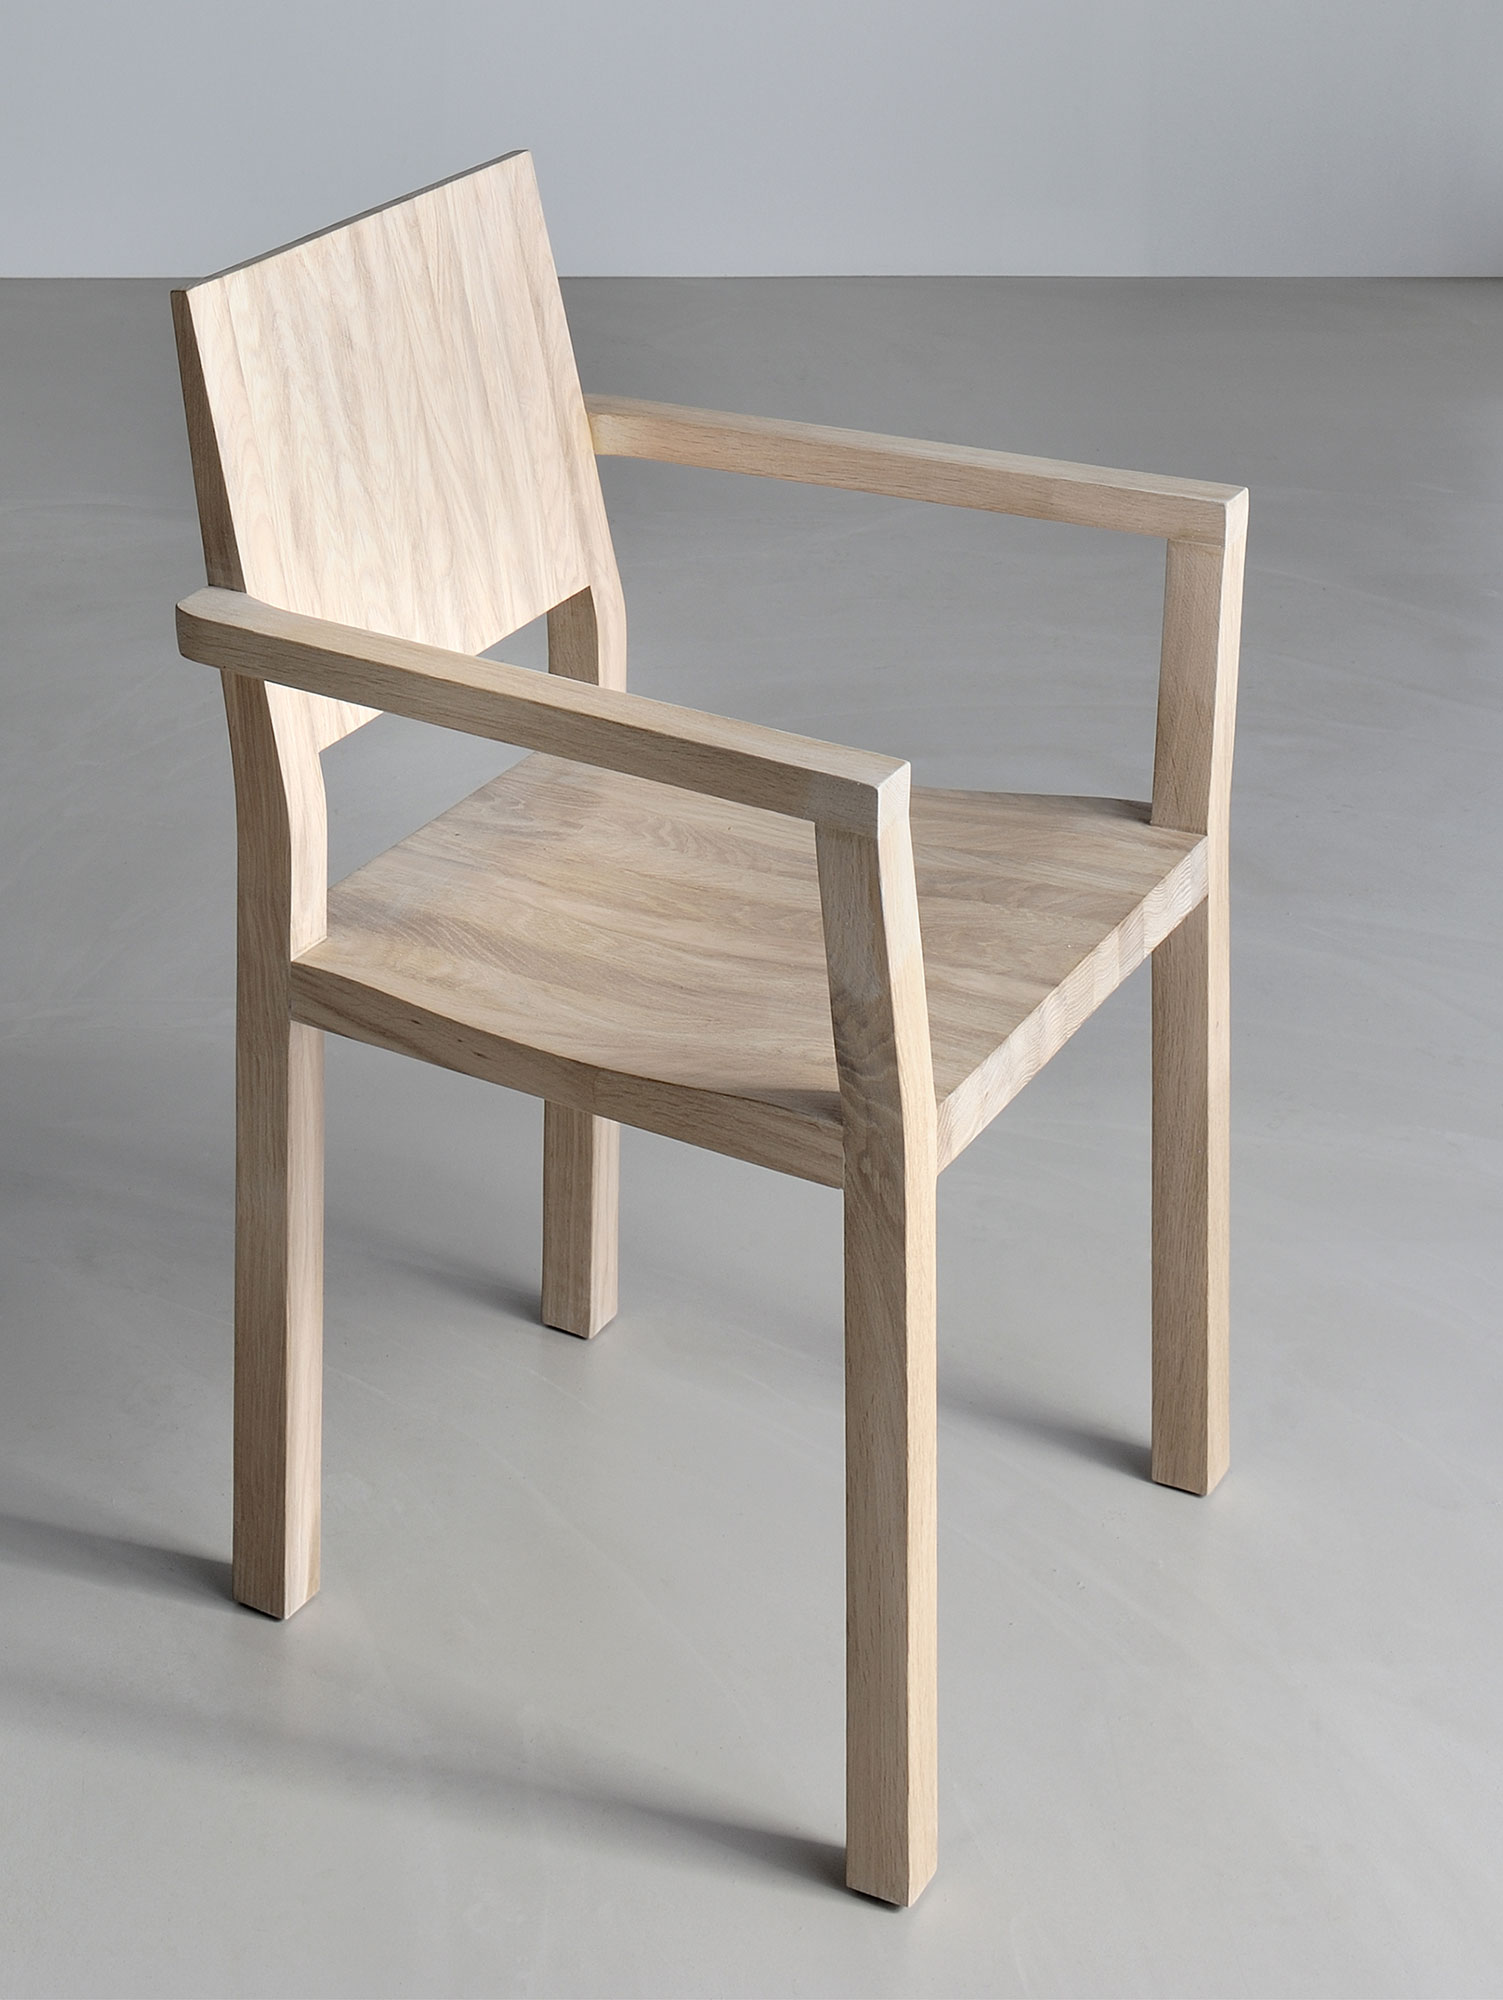 Solid Wood Armchair TAU-A 3343a custom made in solid wood by vitamin design